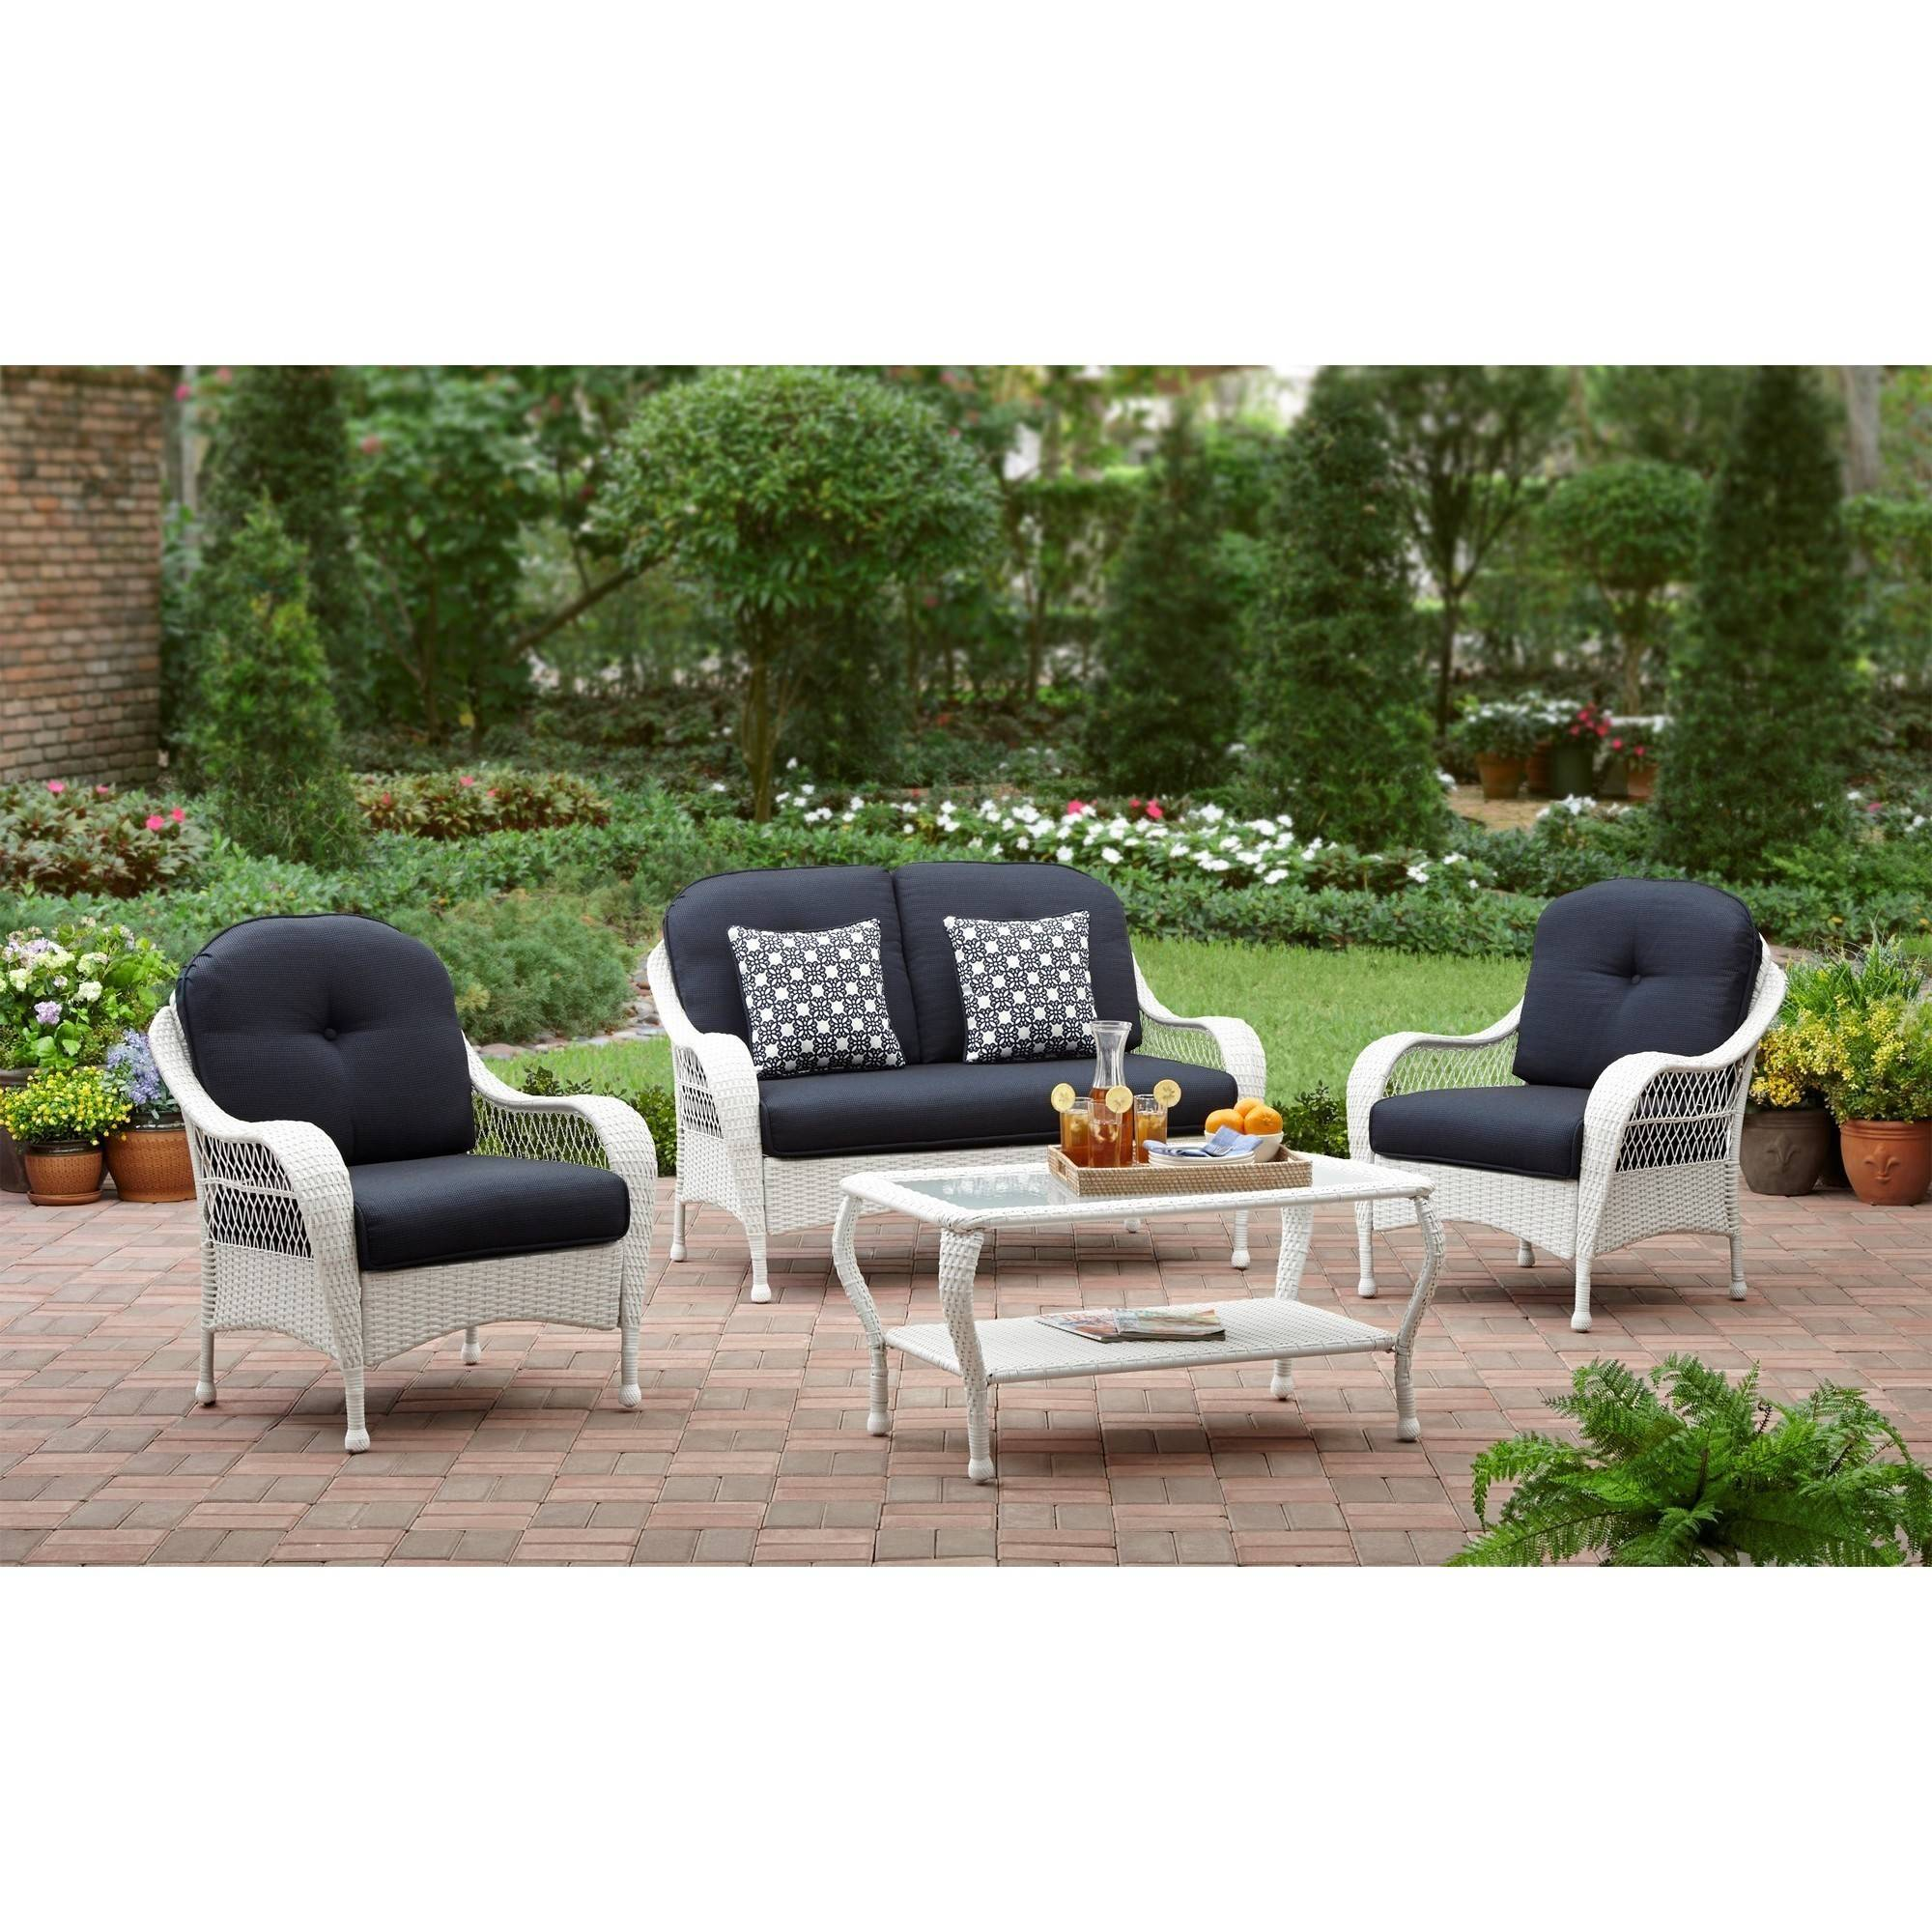 Better Homes and Gardens Azalea Ridge 4-Piece Patio Conversation Set, White, Seats 4 by